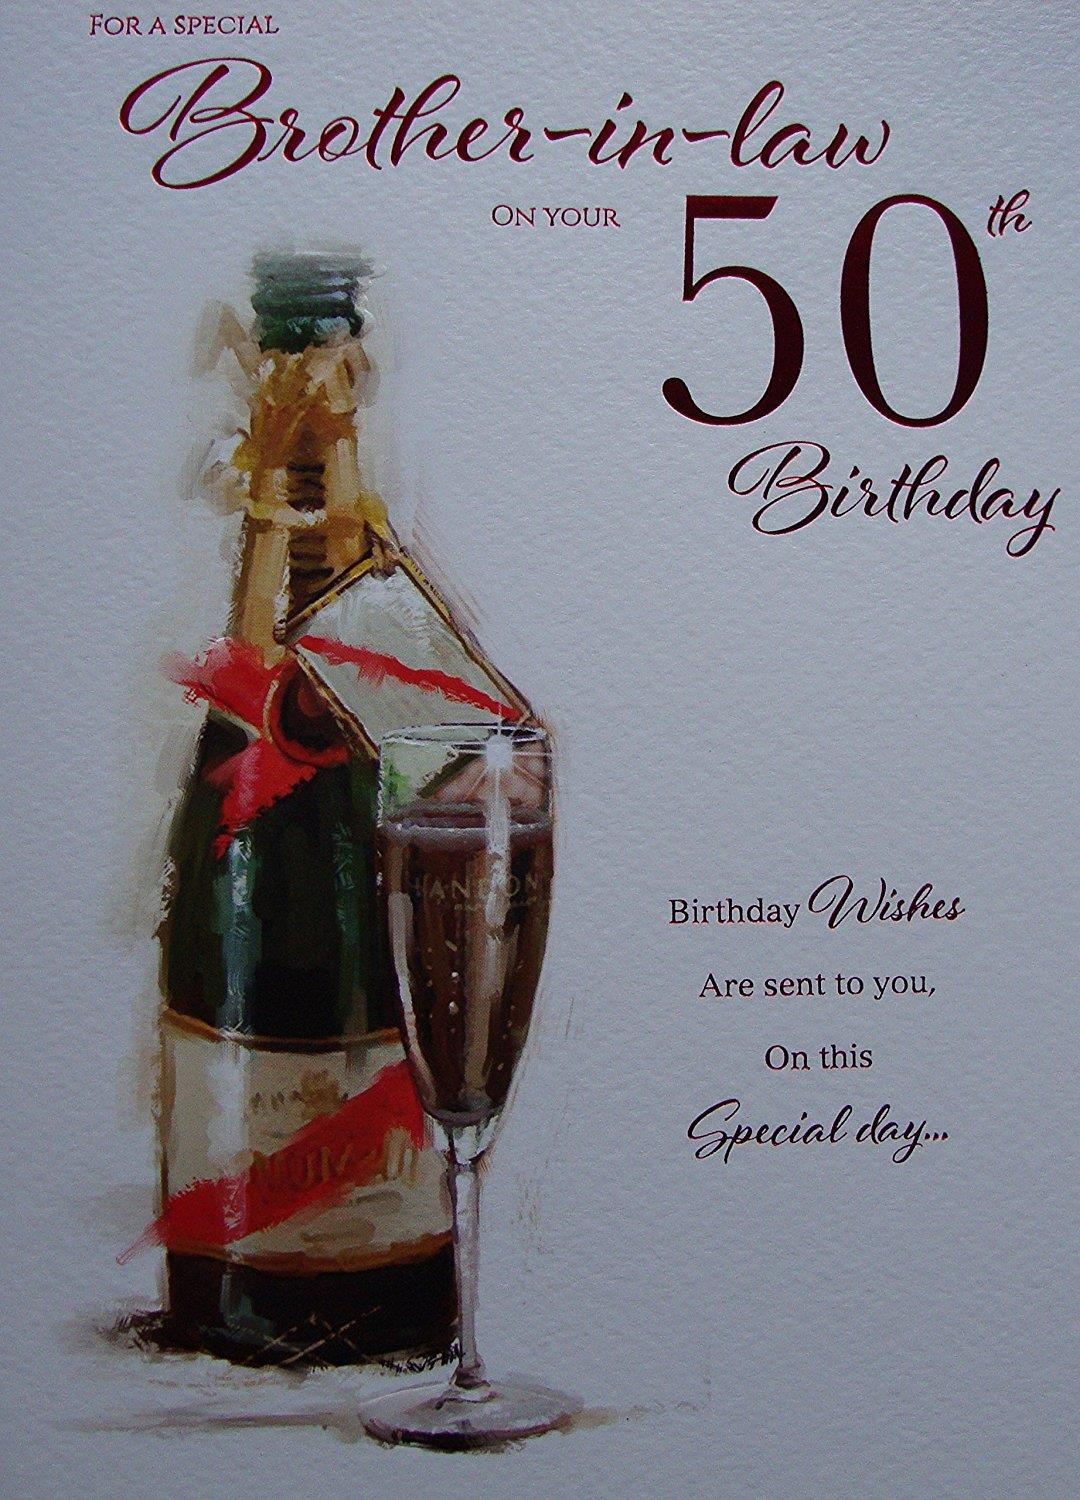 brother in law 50th birthday card ; 55228559